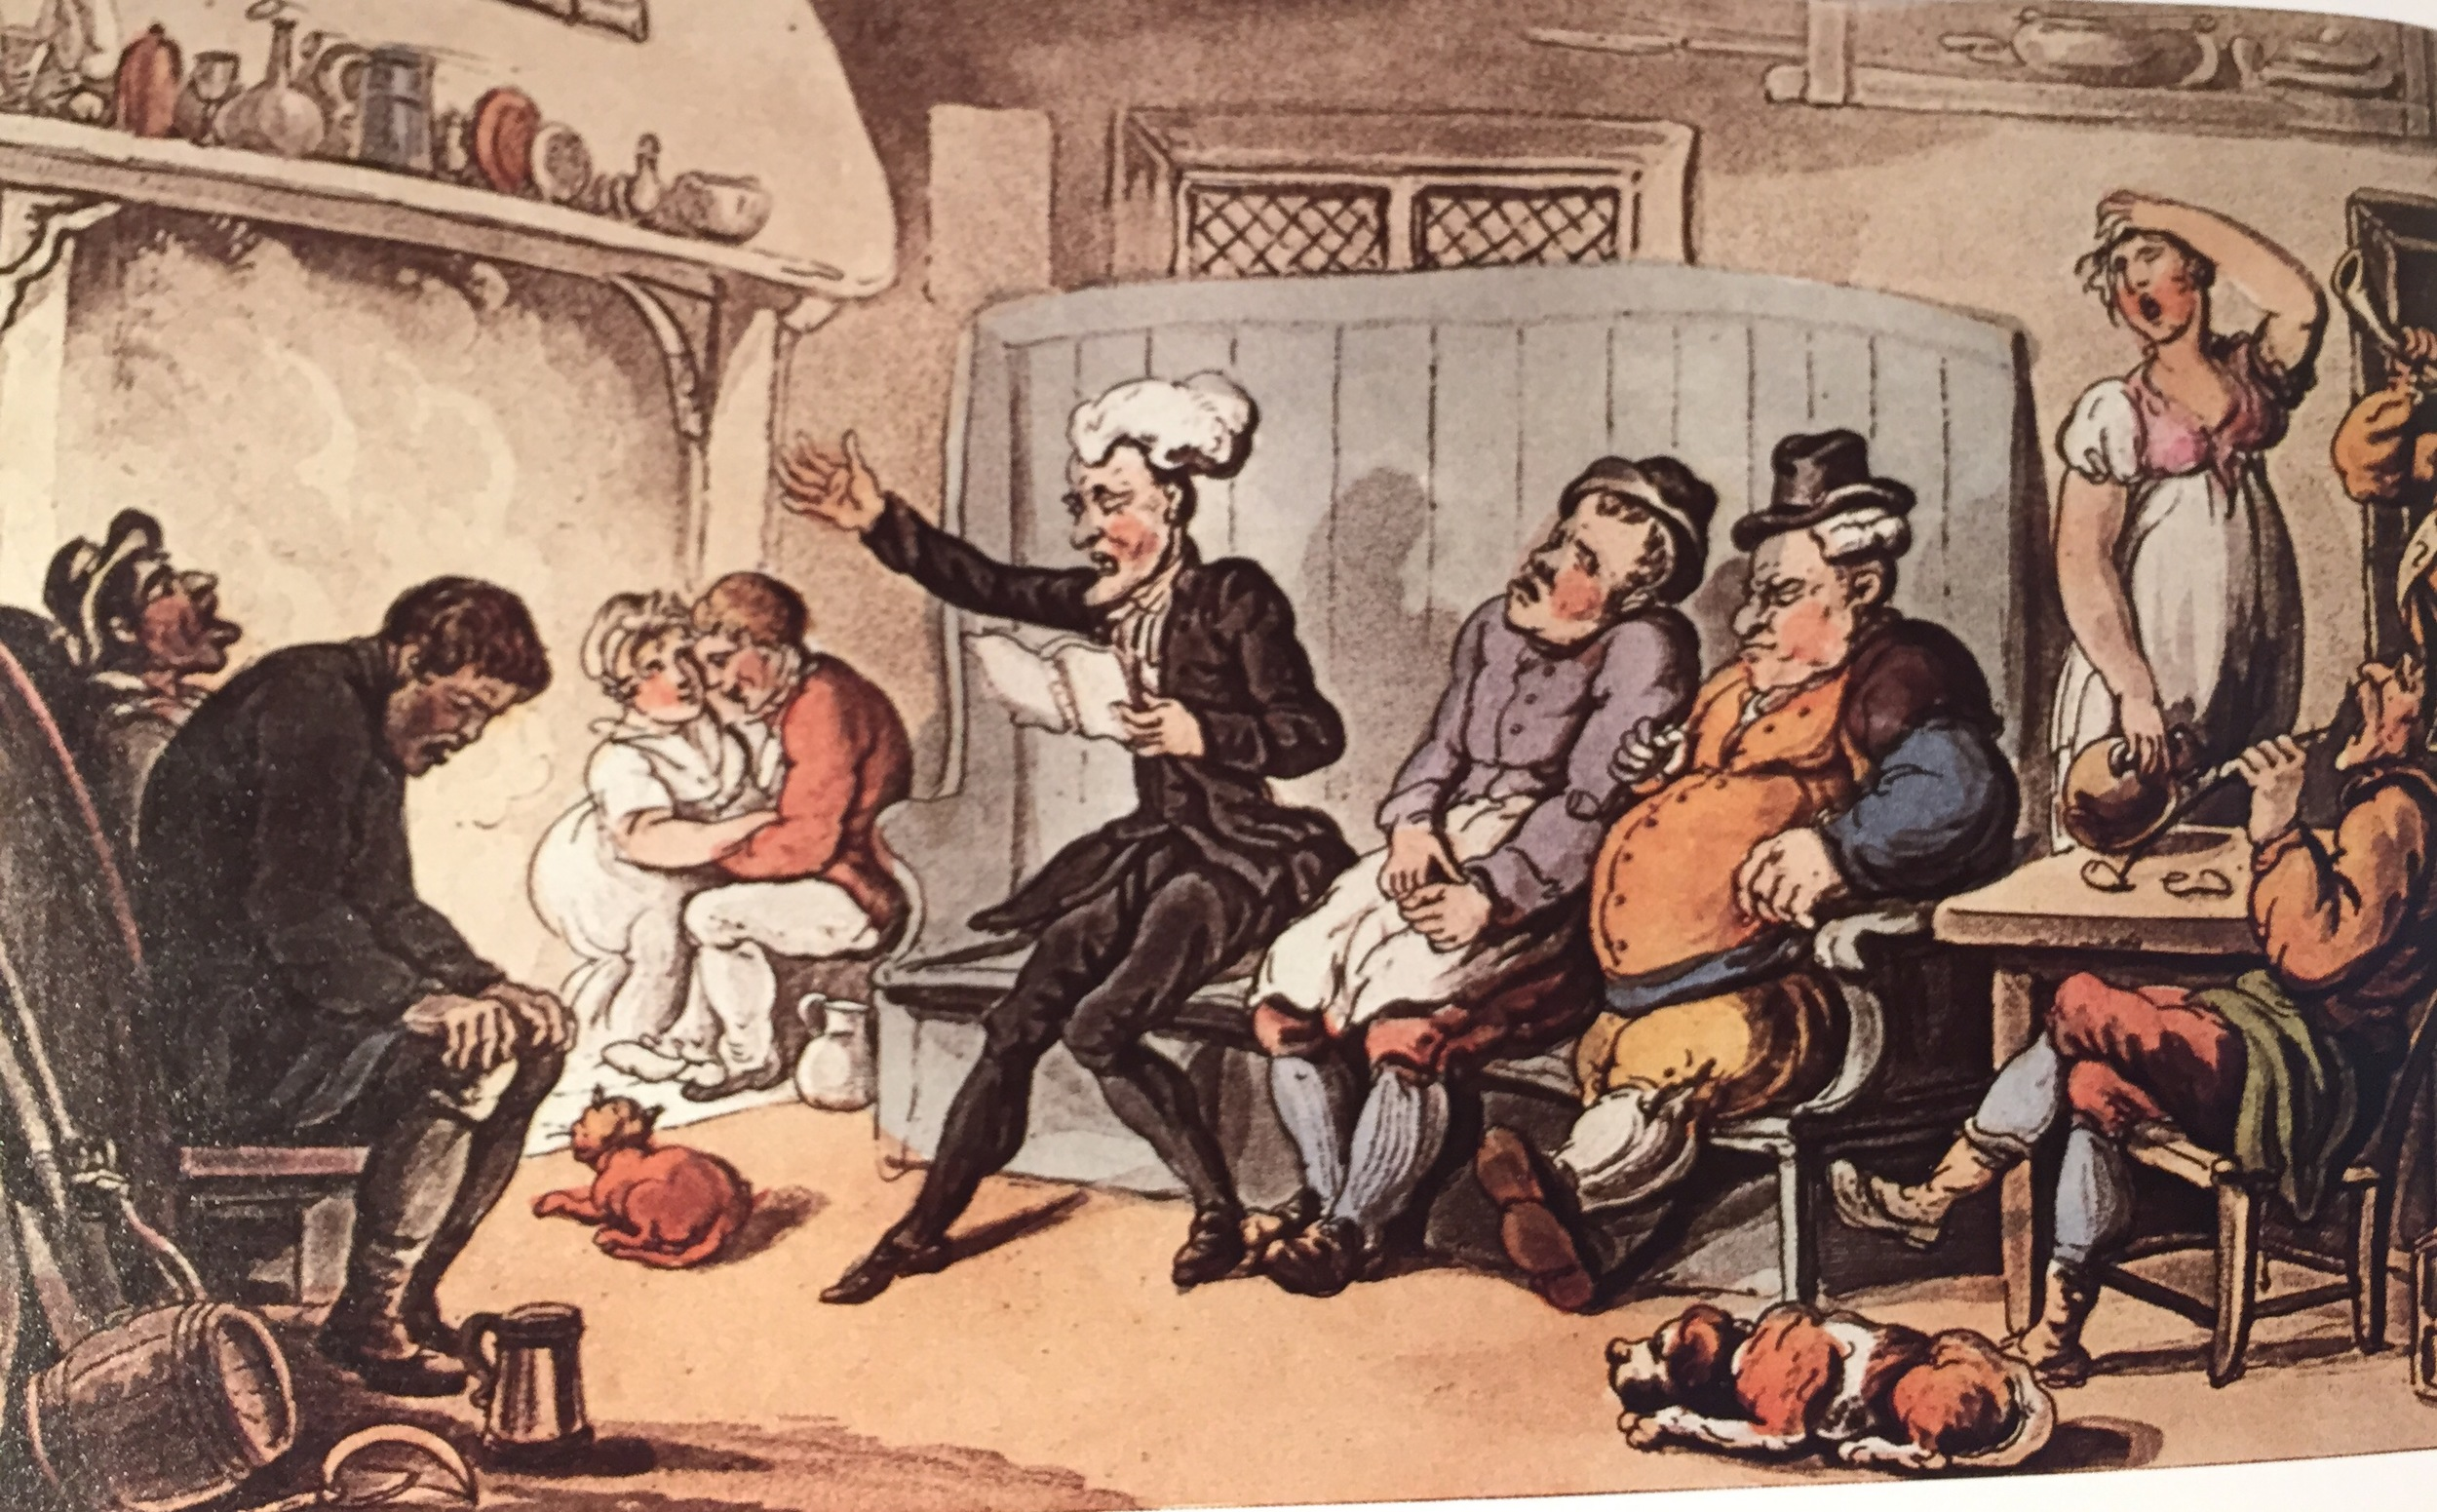 Dr. Syntax Reading his Tour in the Kitchen of the Dun Cow,   aquatint by T. Rowlandson (1817)